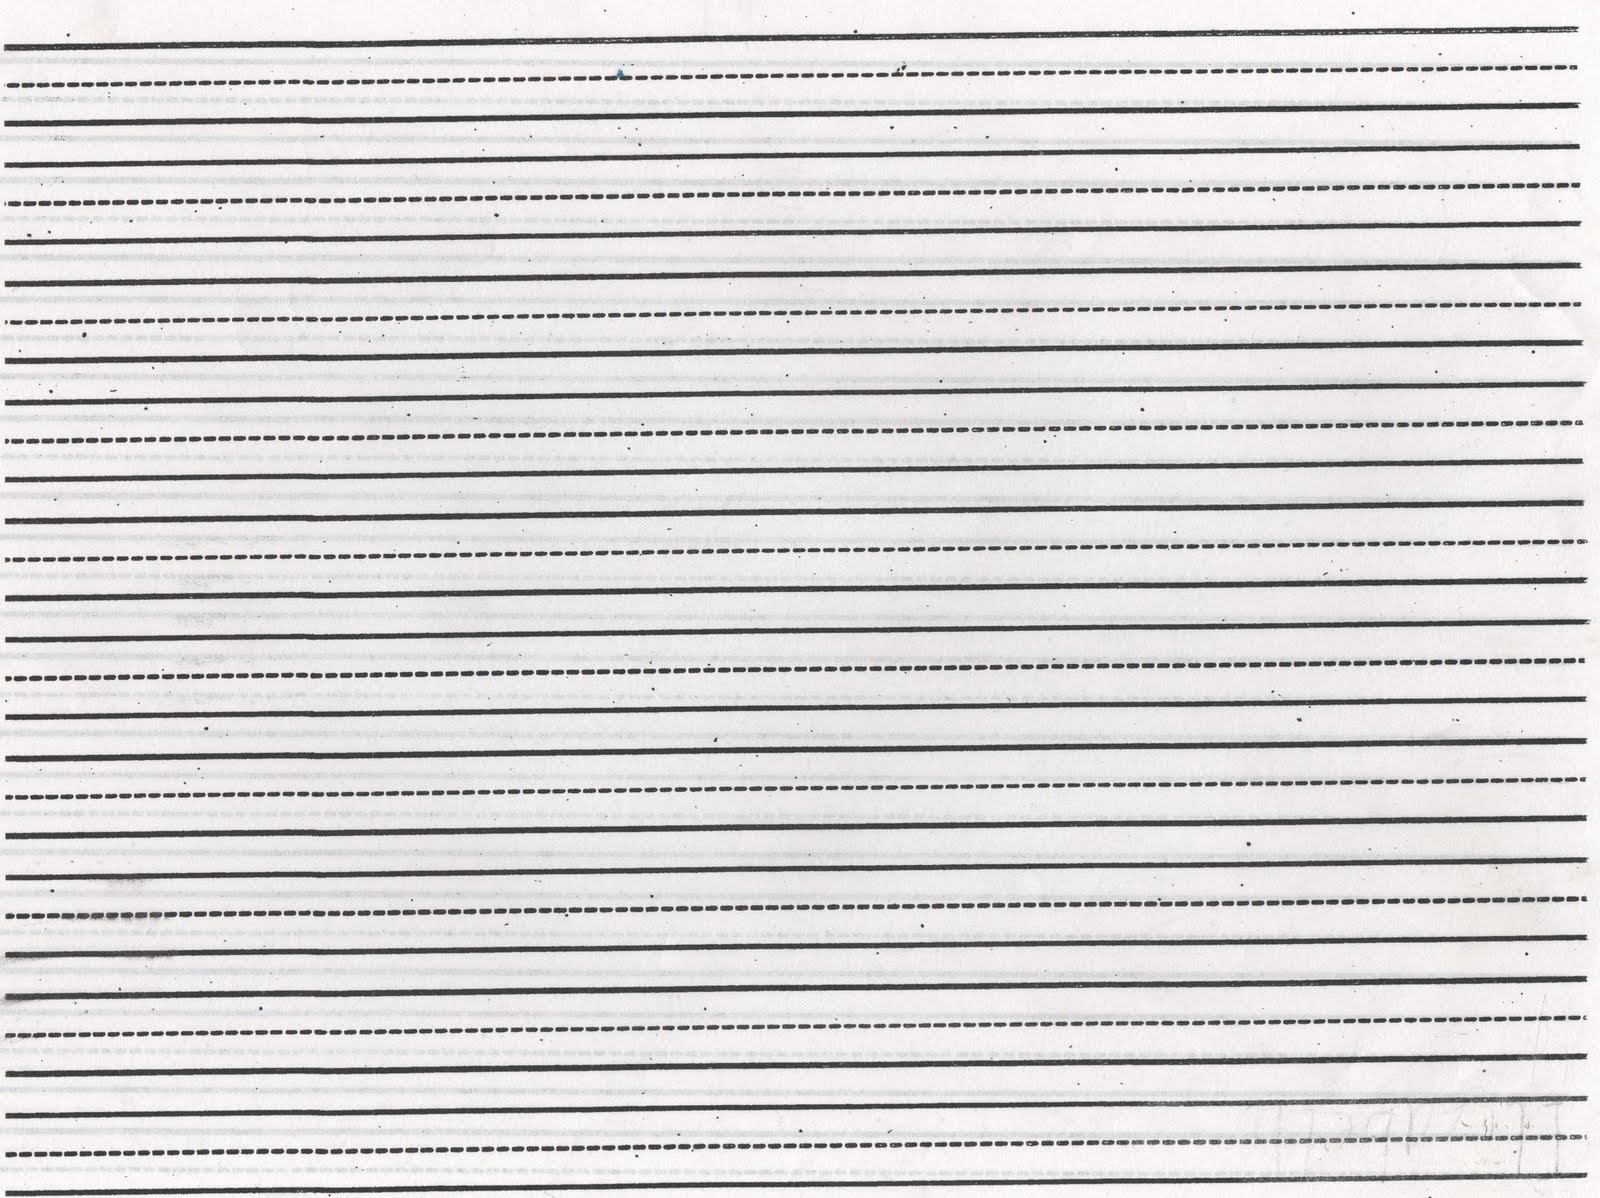 Ruled paper for writing arabic